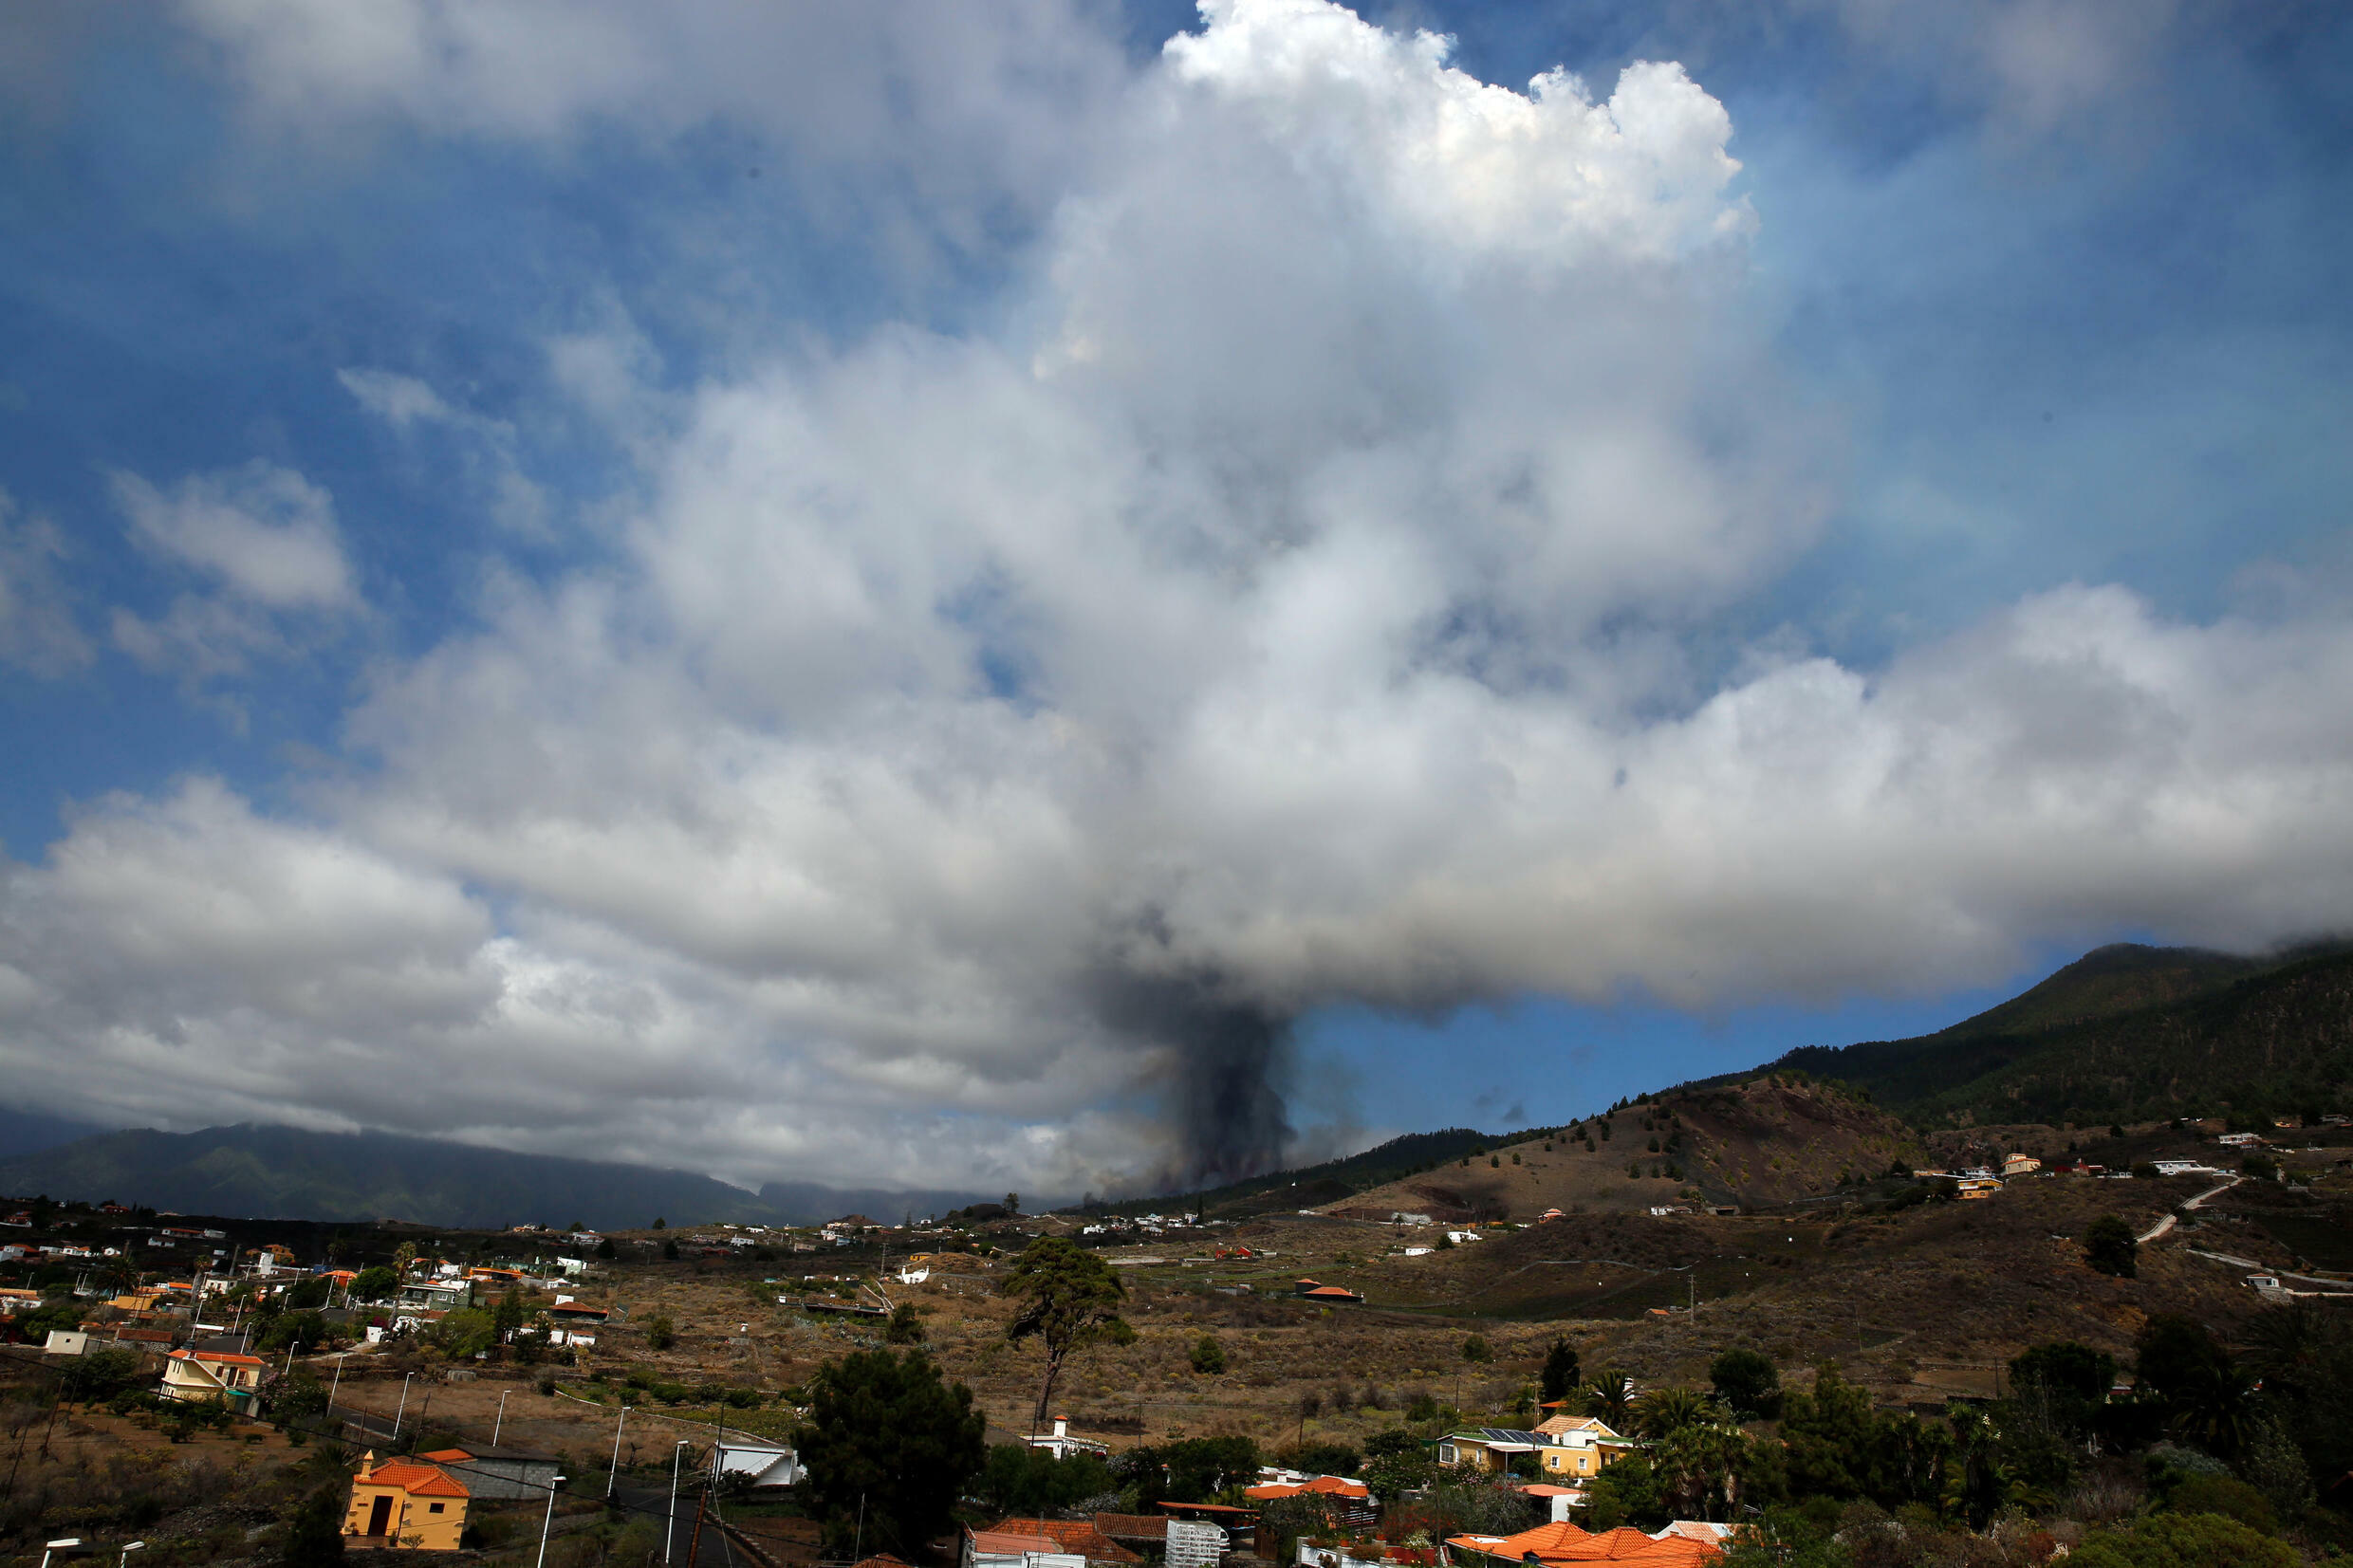 Evacuations started after Mount Cumbre Vieja erupted on the Canary Islands